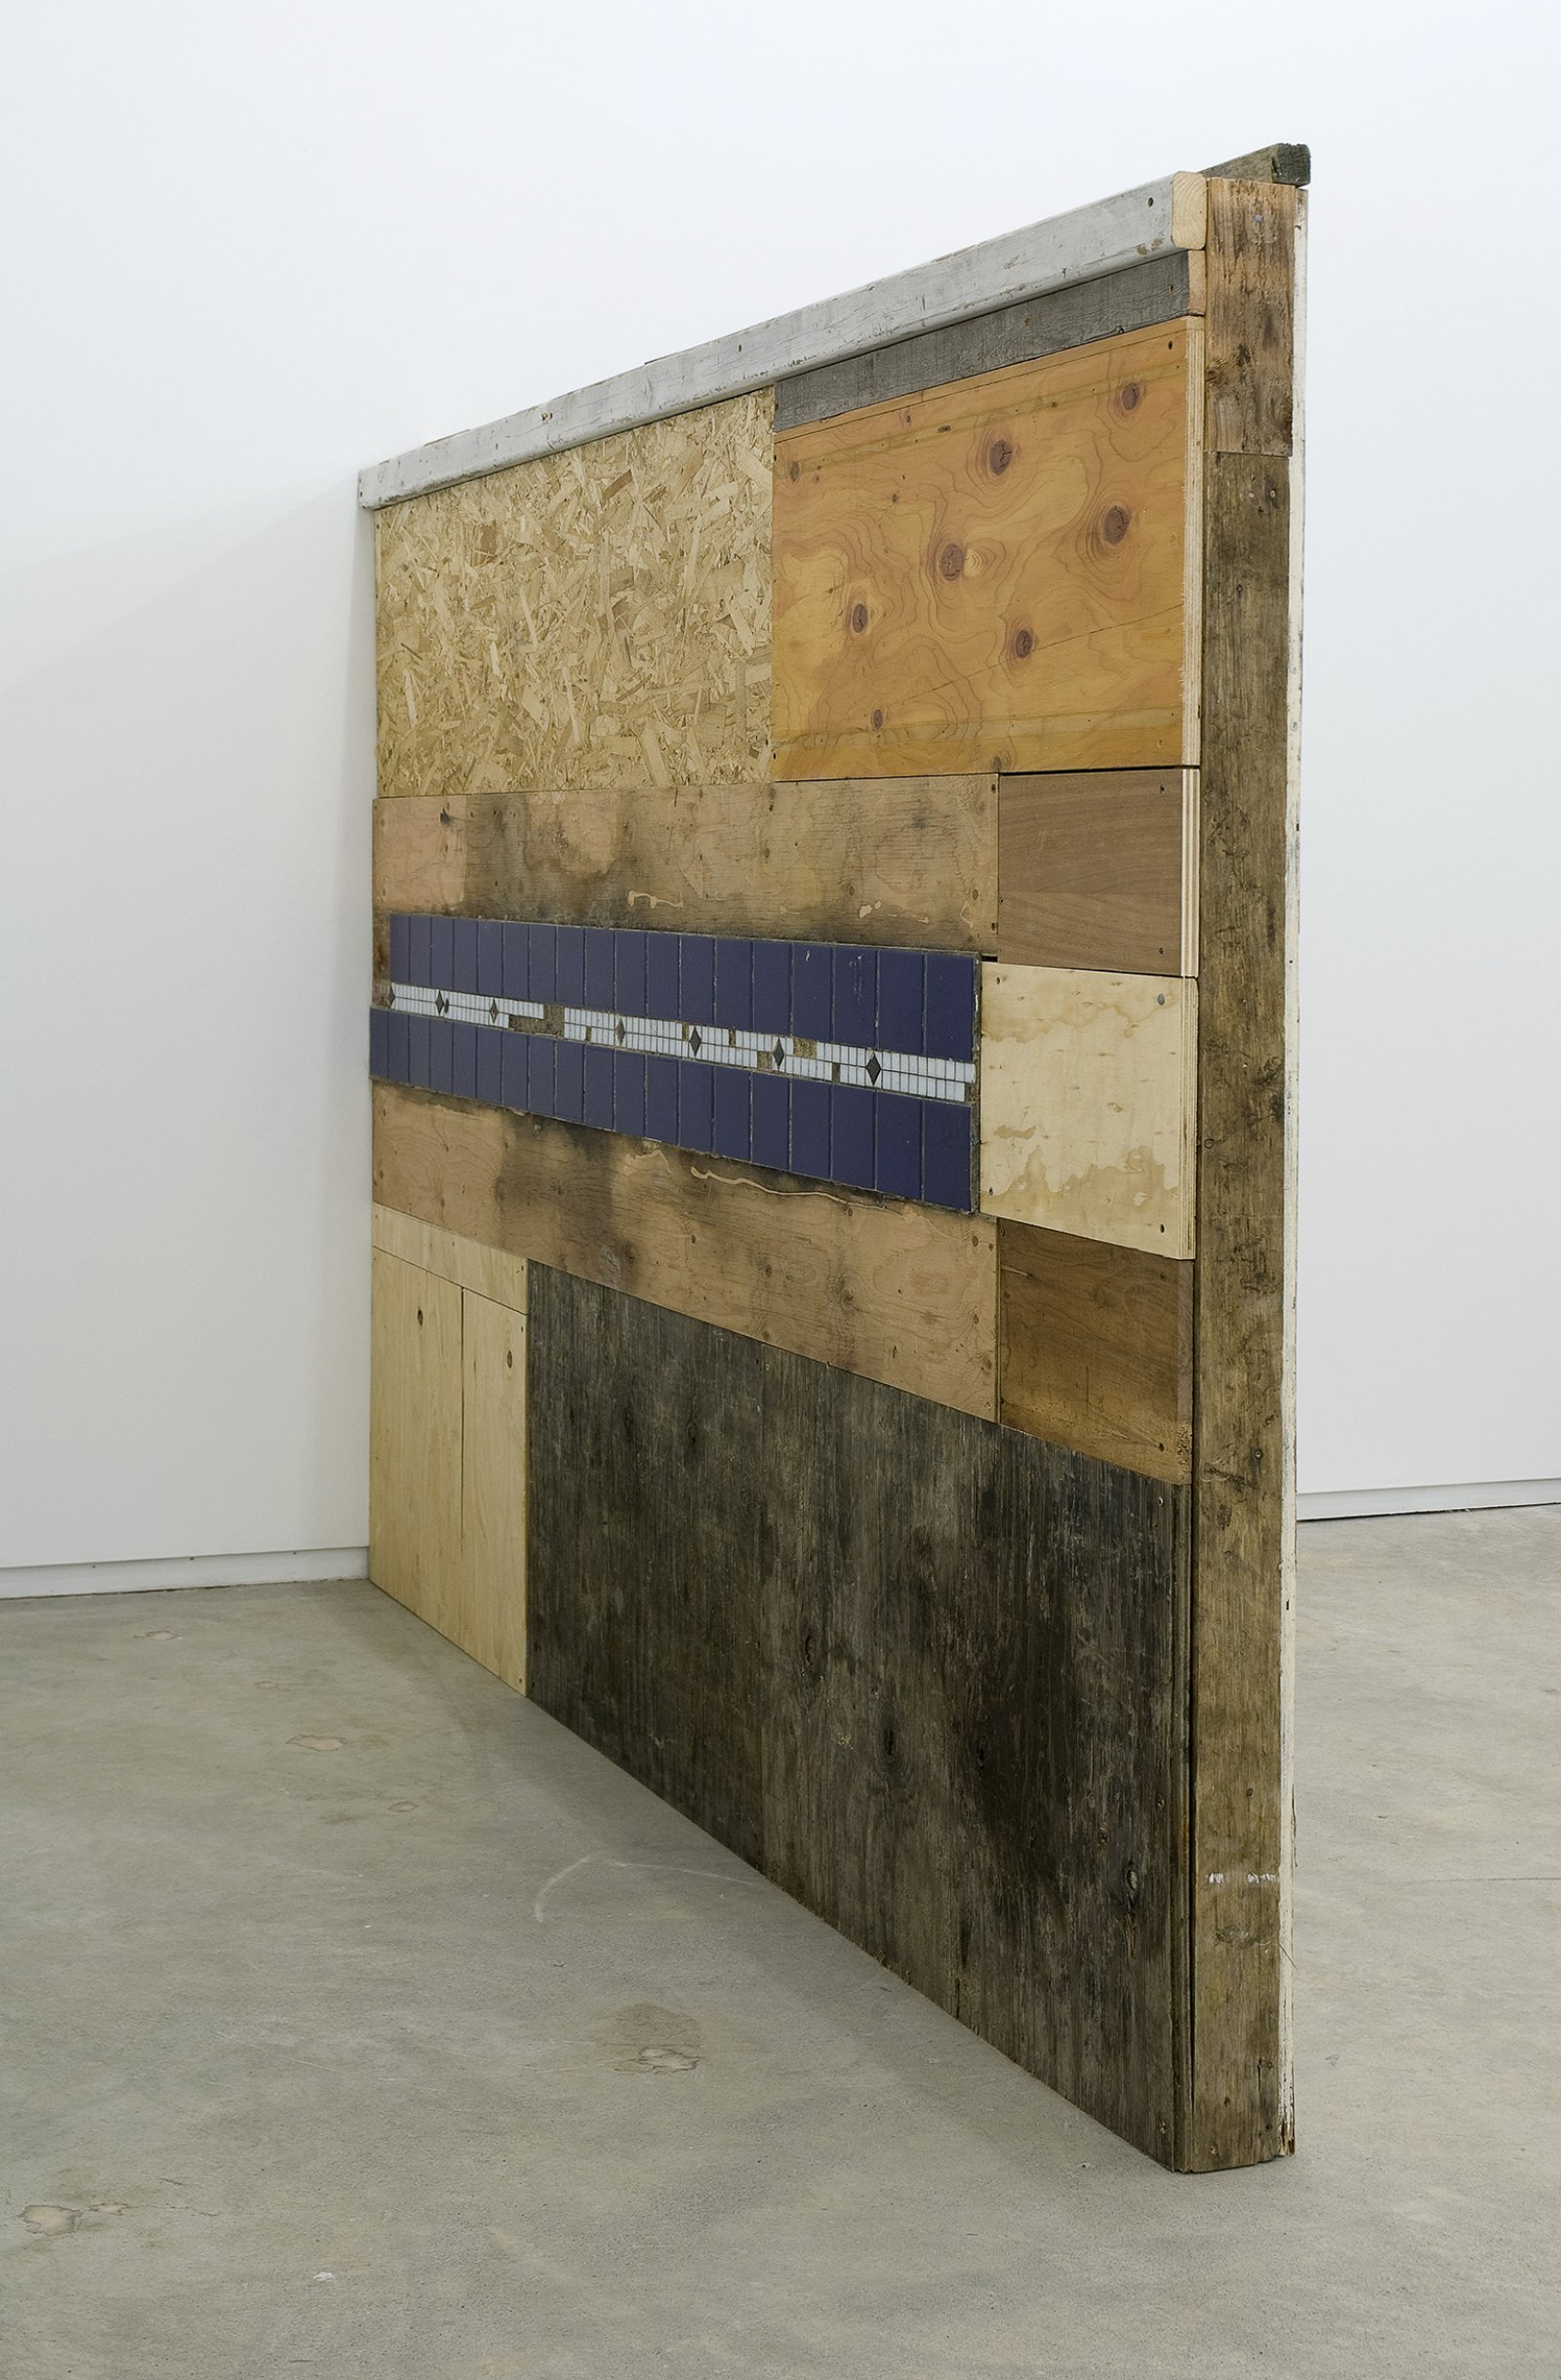 Gareth Moore, Piss Wall from Uncertain Pilgrimage, 2009, found wood, tile, 73 x 100 x 5 in. (186 x 253 x 13 cm)   by Ashes Withyman